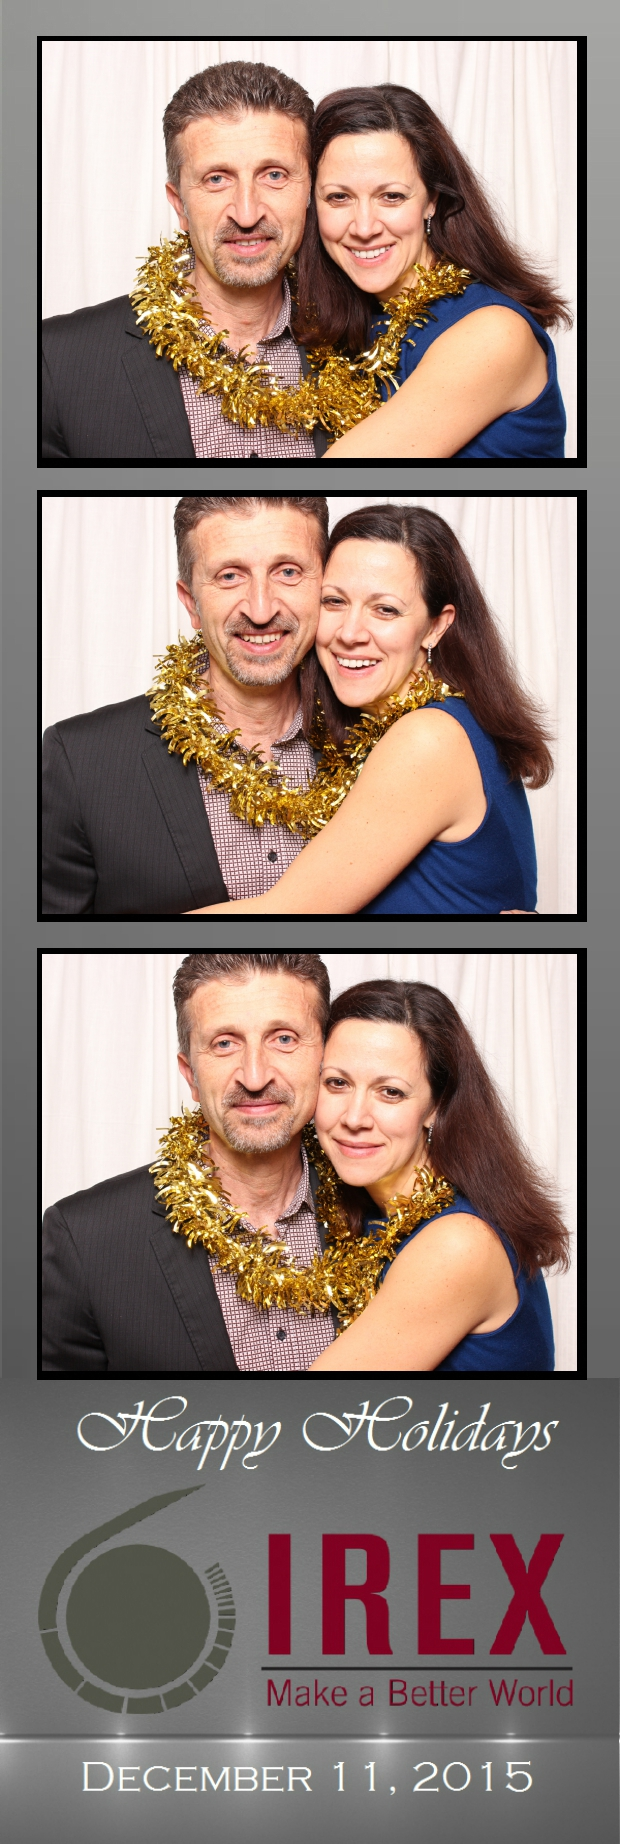 Guest House Events Photo Booth Strips IREX (37).jpg